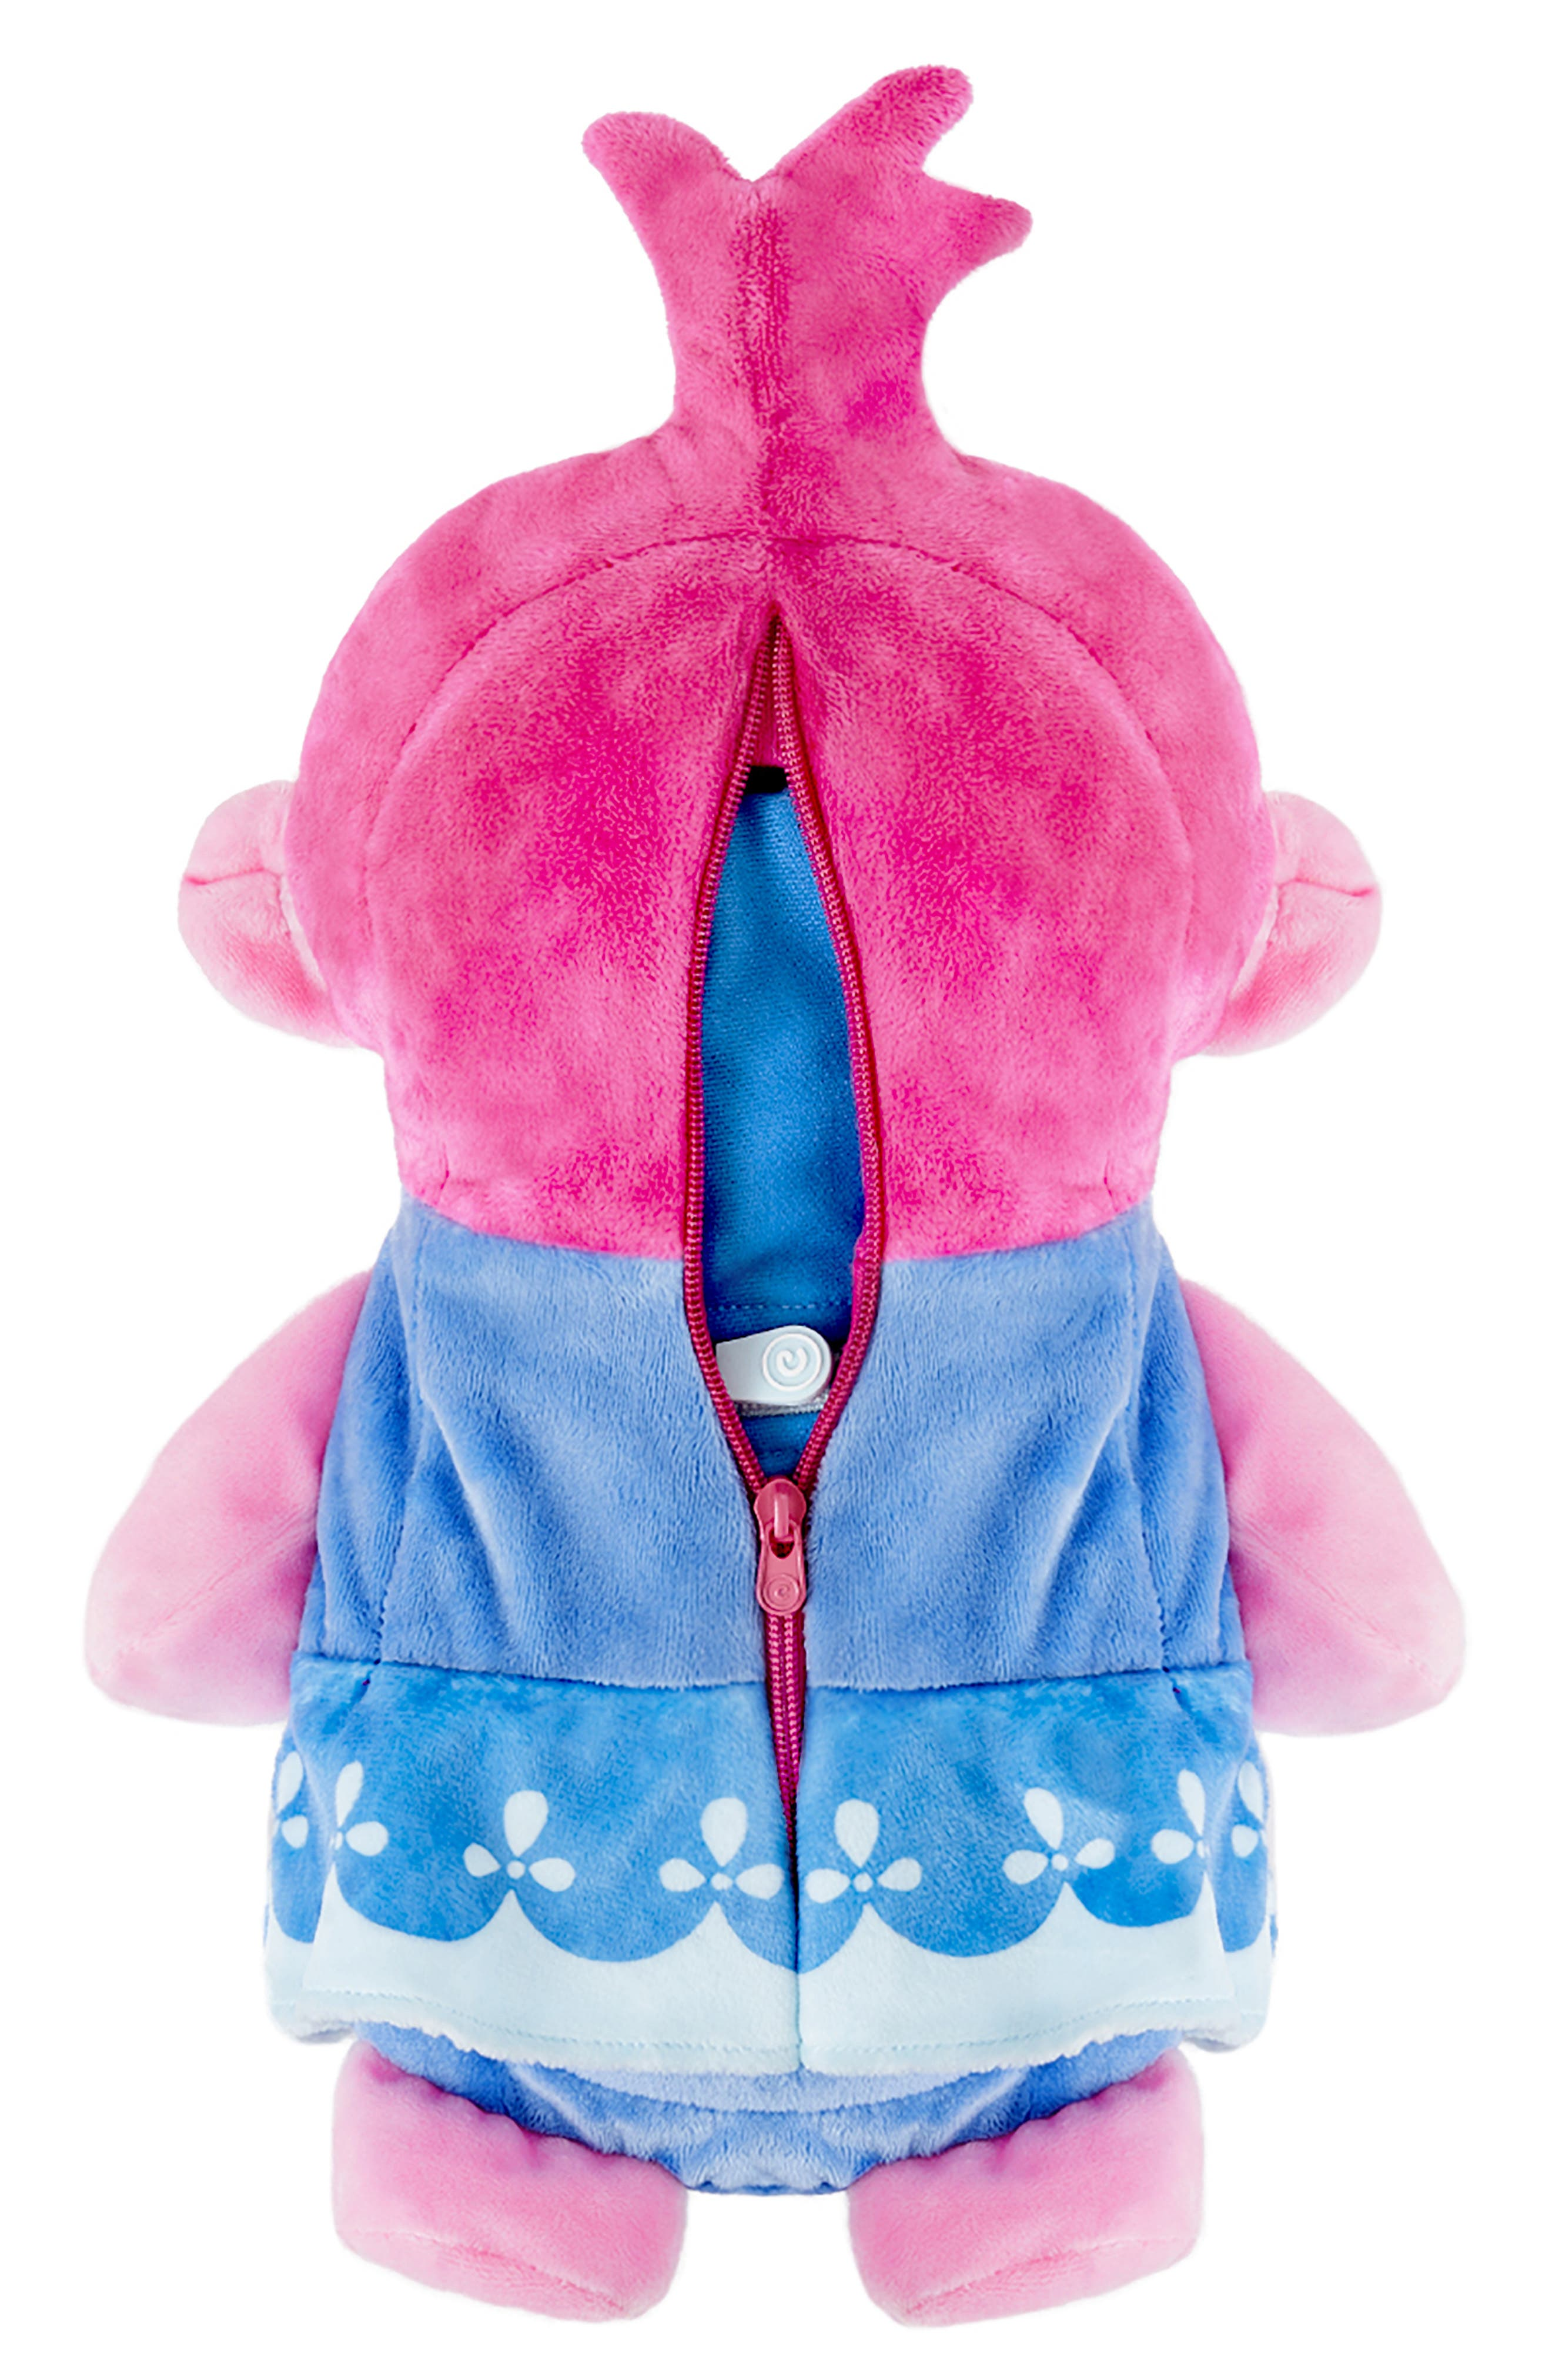 CUBCOATS, DreamWorks Trolls Poppy 2-in-1 Stuffed Animal Hoodie, Alternate thumbnail 6, color, PINK MIX